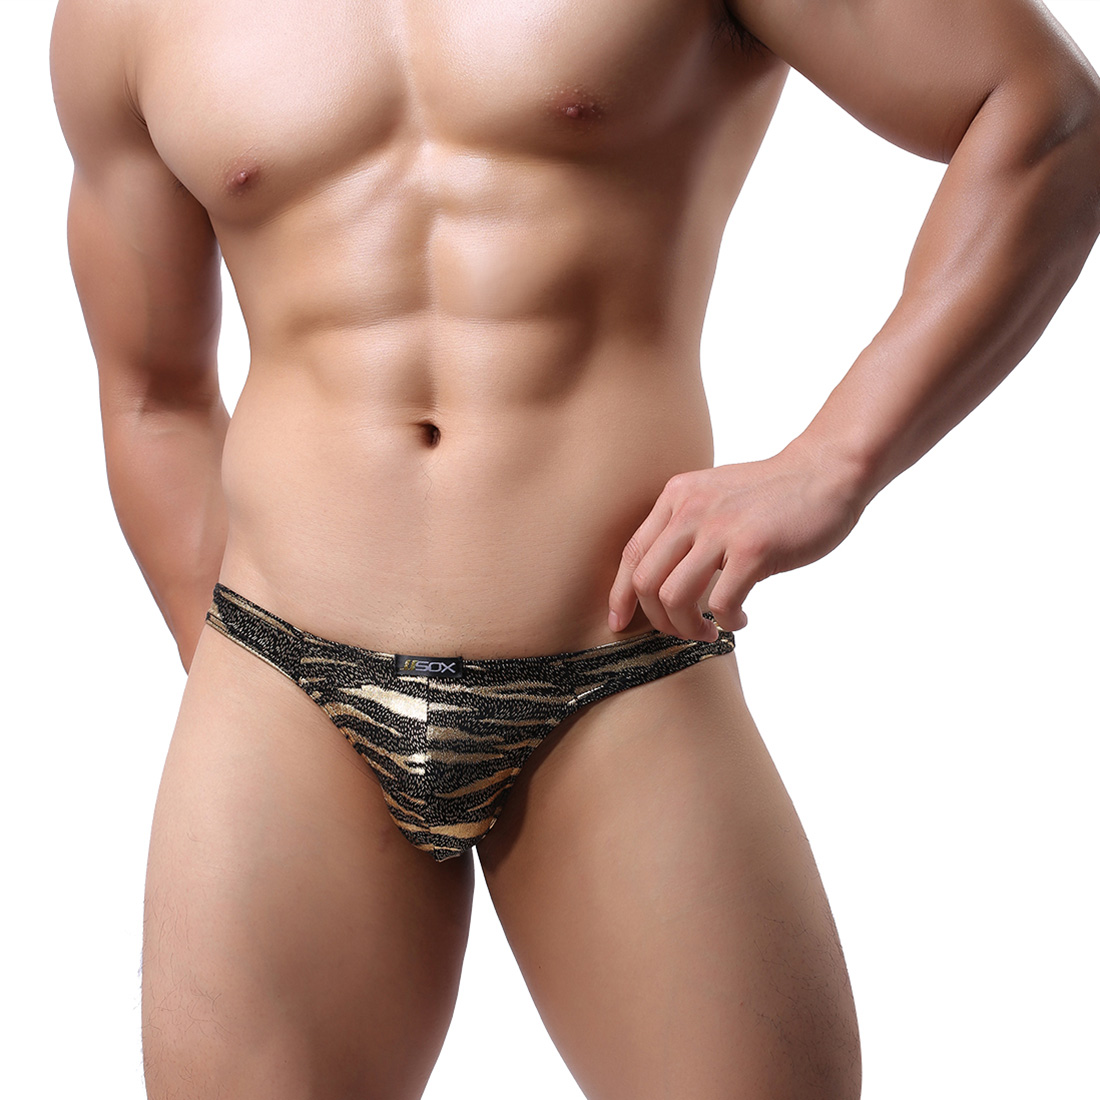 Men's Lingerie Underwear JJSOX Series Low Waist T-back ...